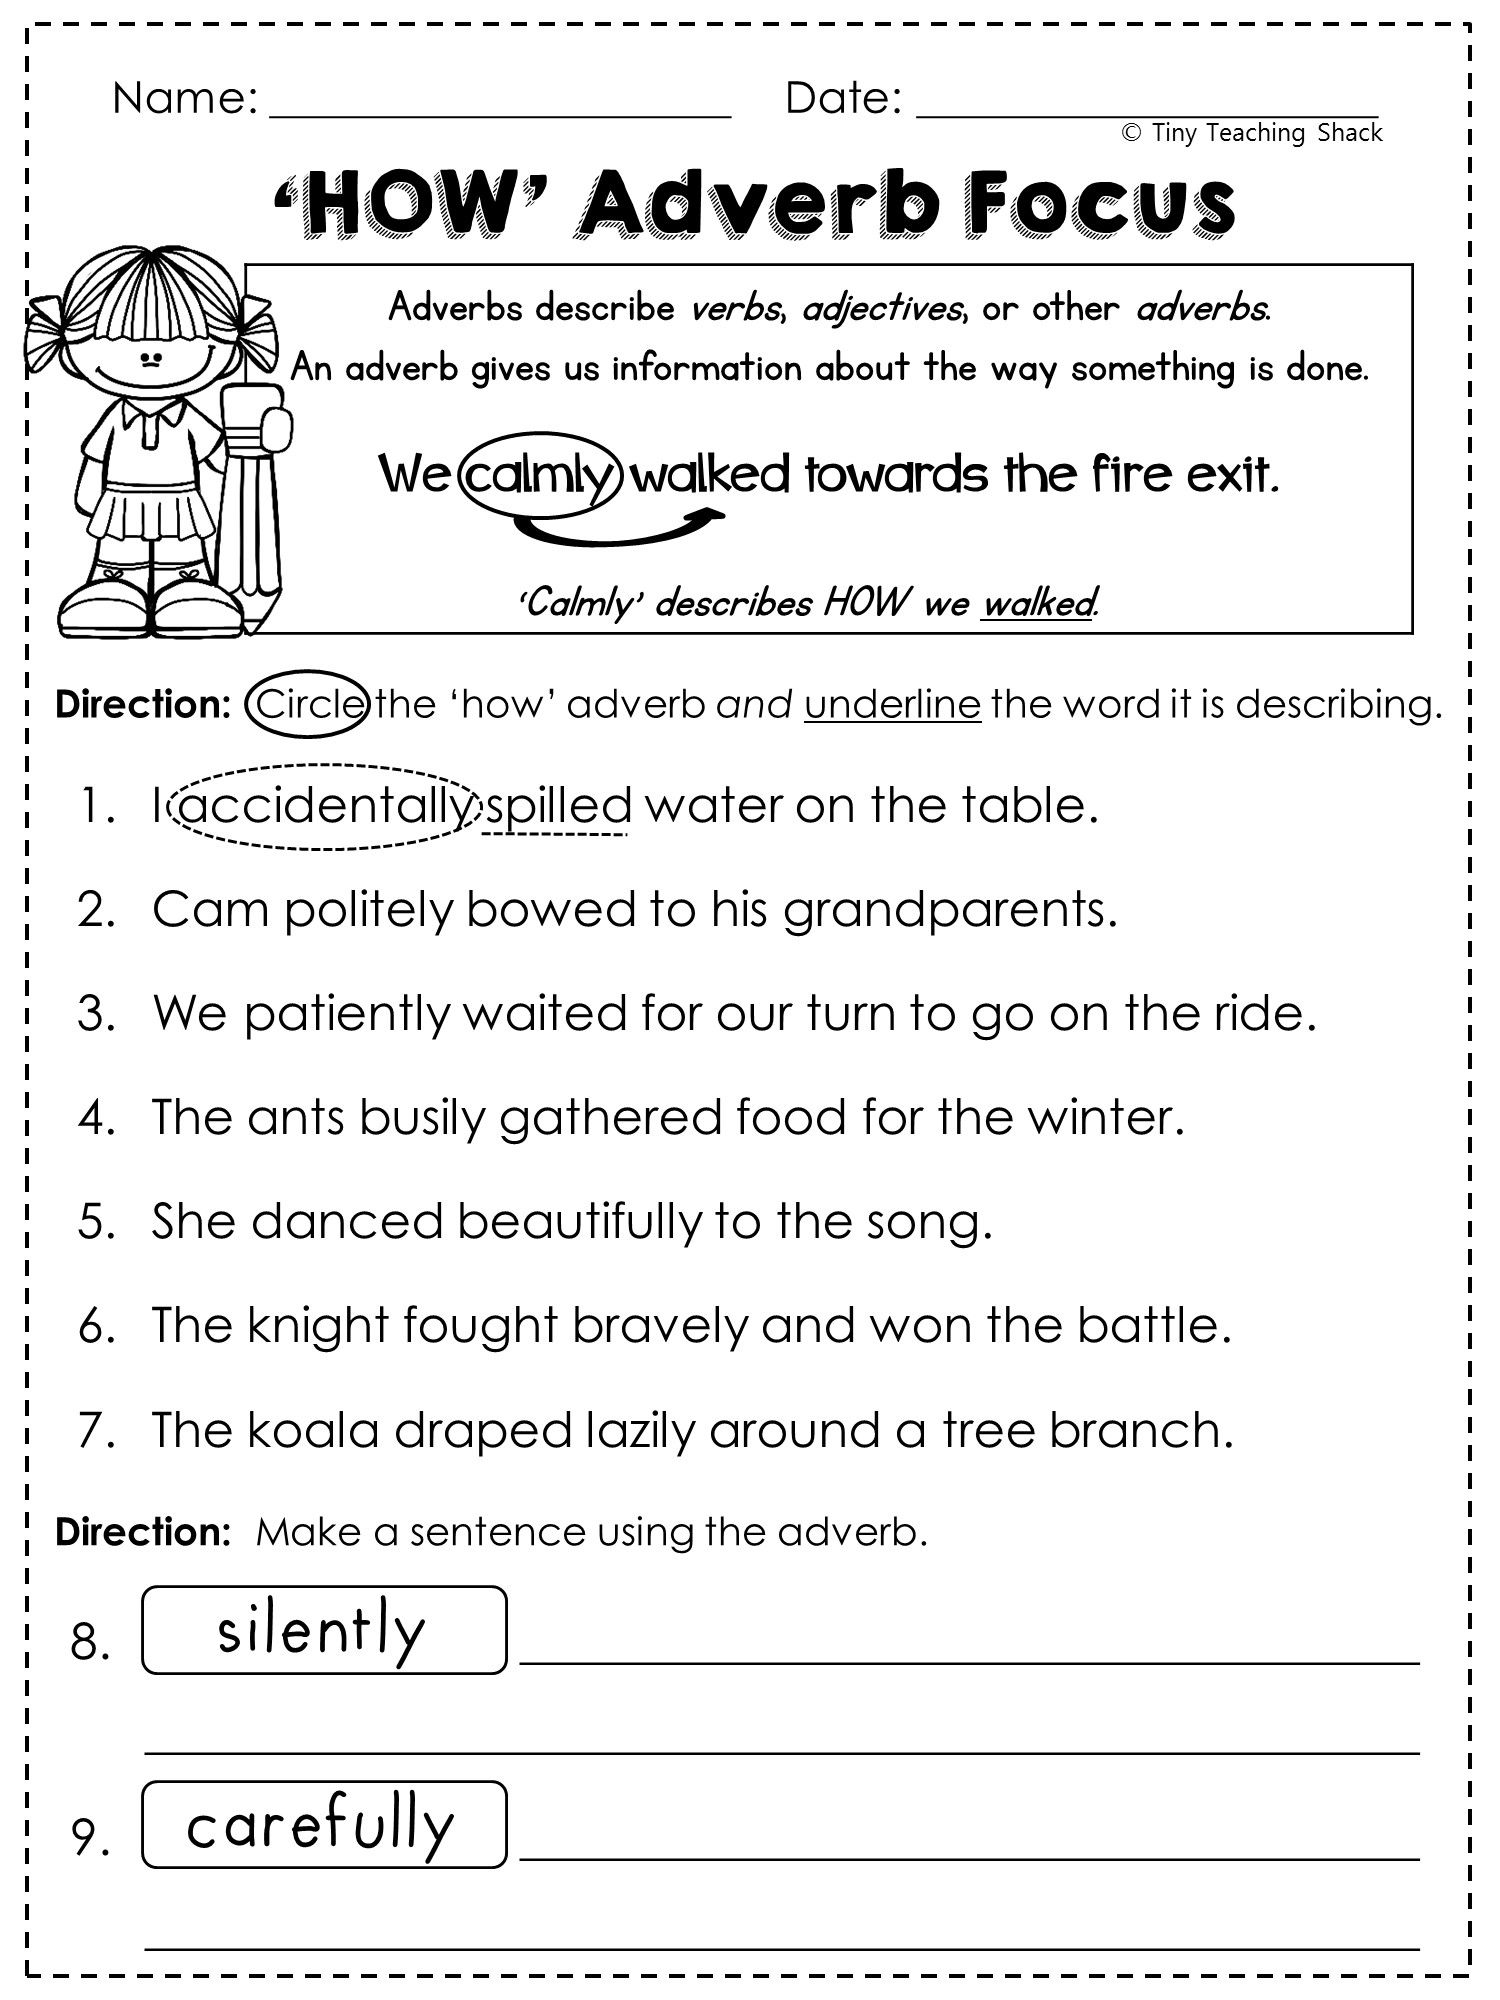 Worksheets Adverbs Worksheet free adverb worksheet printables pinterest adverbs worksheets 2nd grade language arts and grammar practice sheets freebie common core or not